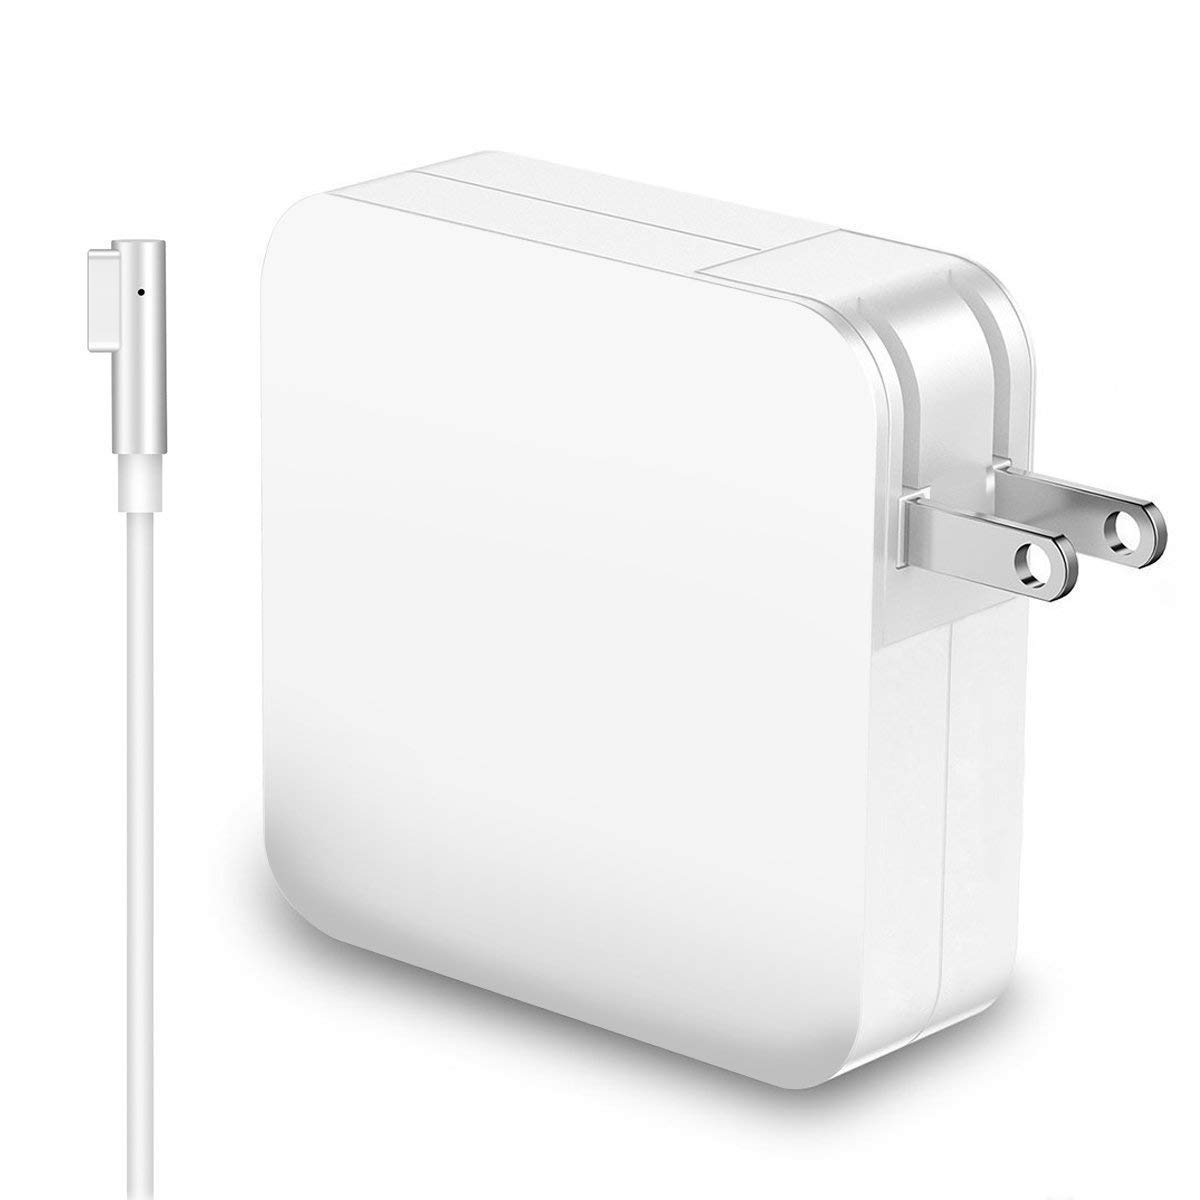 NEWBEING 60W Compatible MacBook Pro Charger, MacBook Air Charger, L-Tip Replacement MacBook Charger, Magsafe 2 Magnetic L-Tip Power Adapter Charger for Apple MacBook 13.3'',15'' and 17''